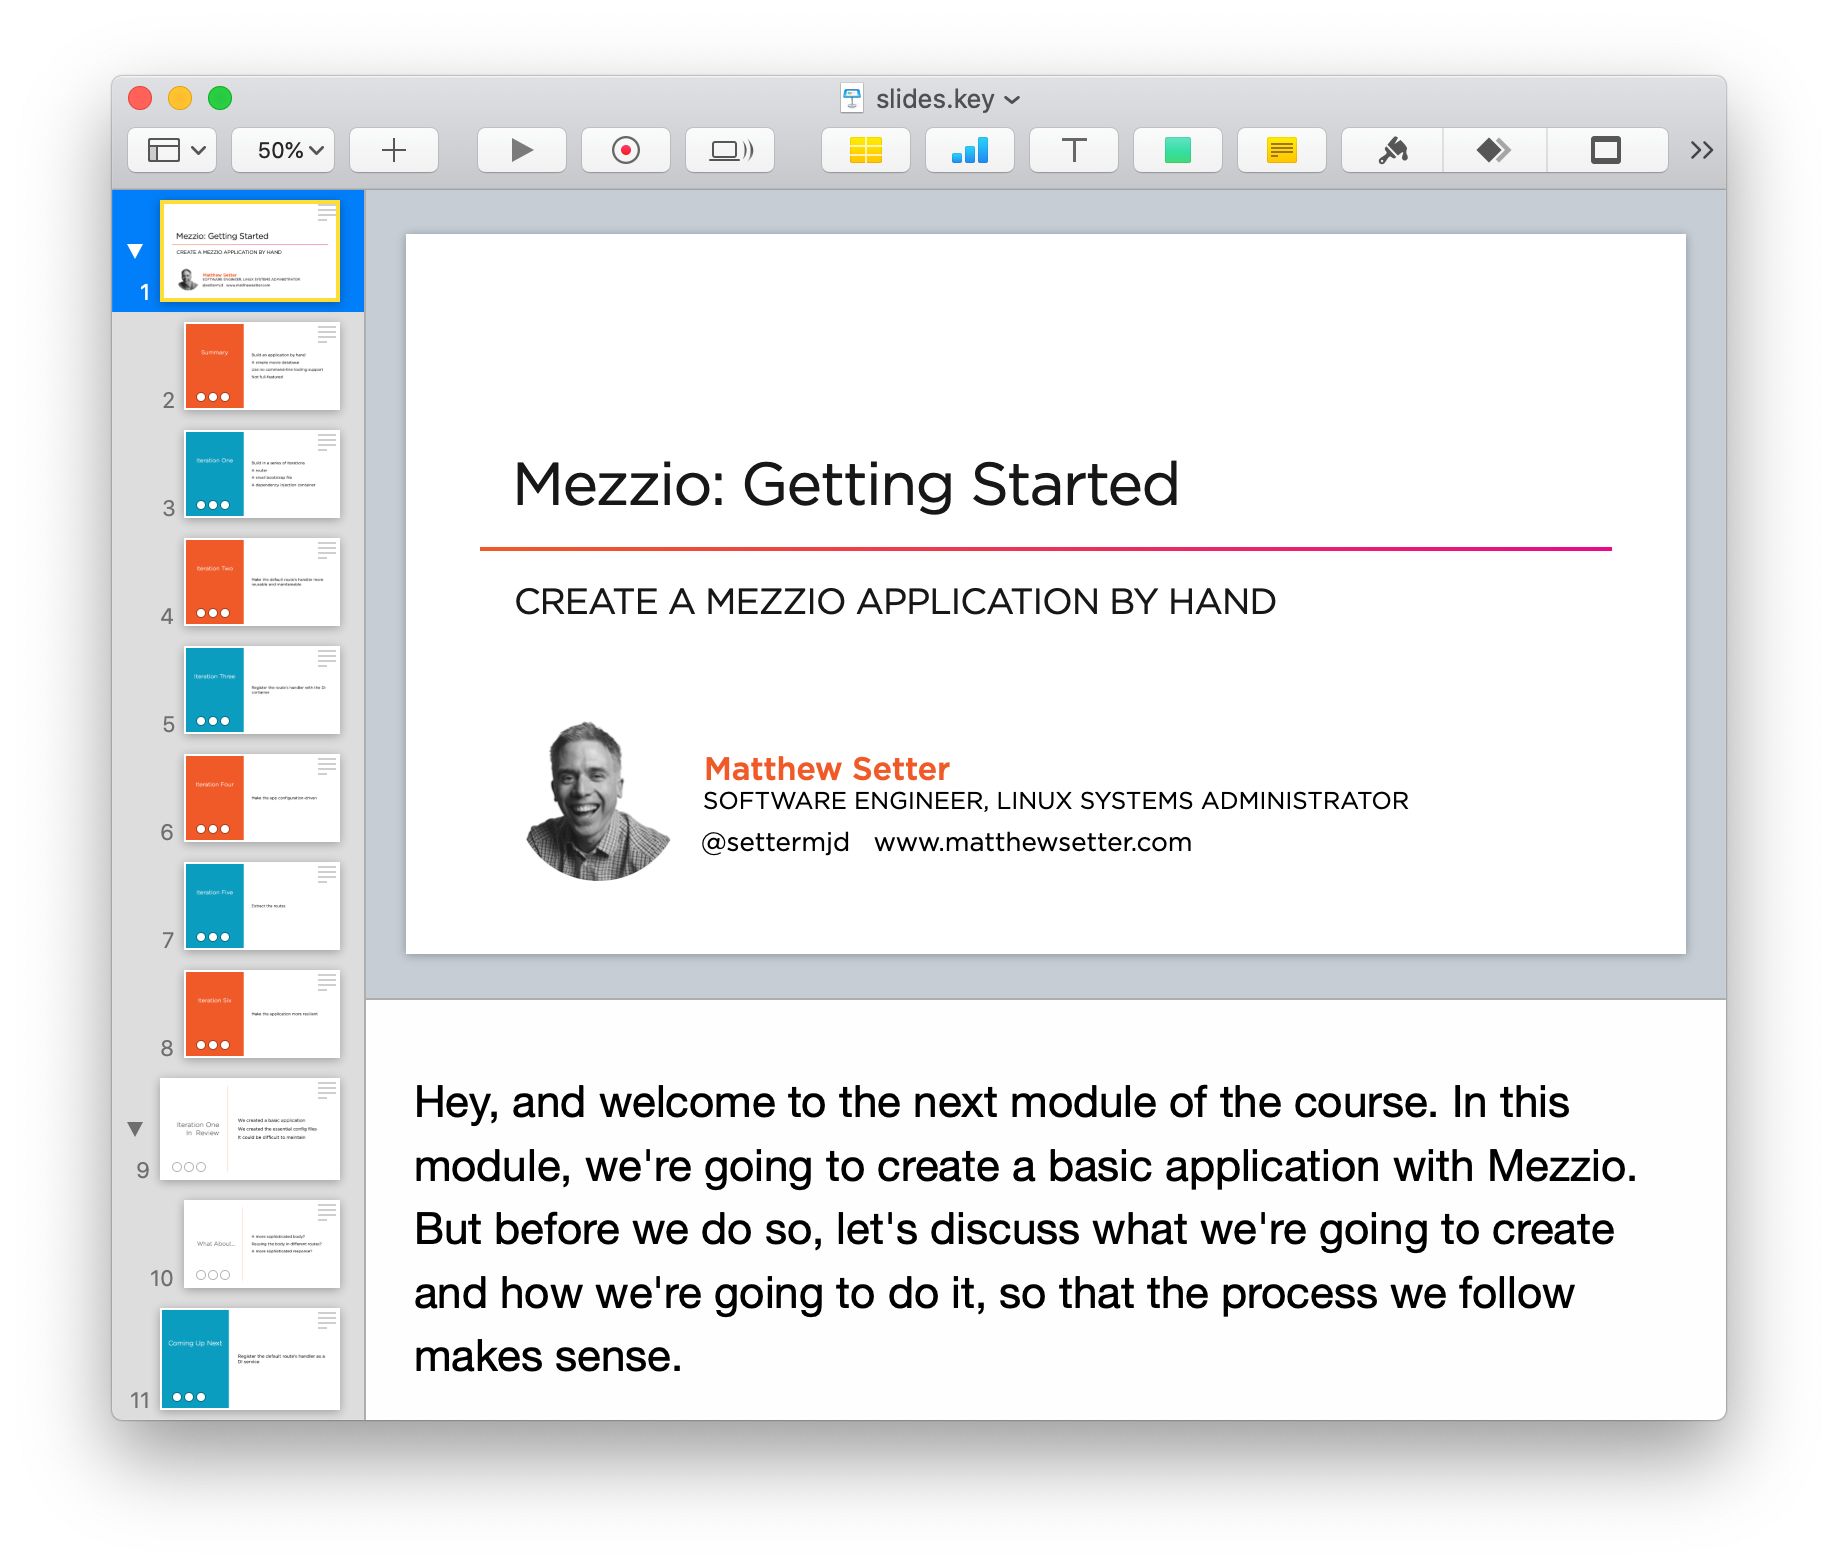 Creating the slide deck for Mezzio: Getting Started in Apple Keynote